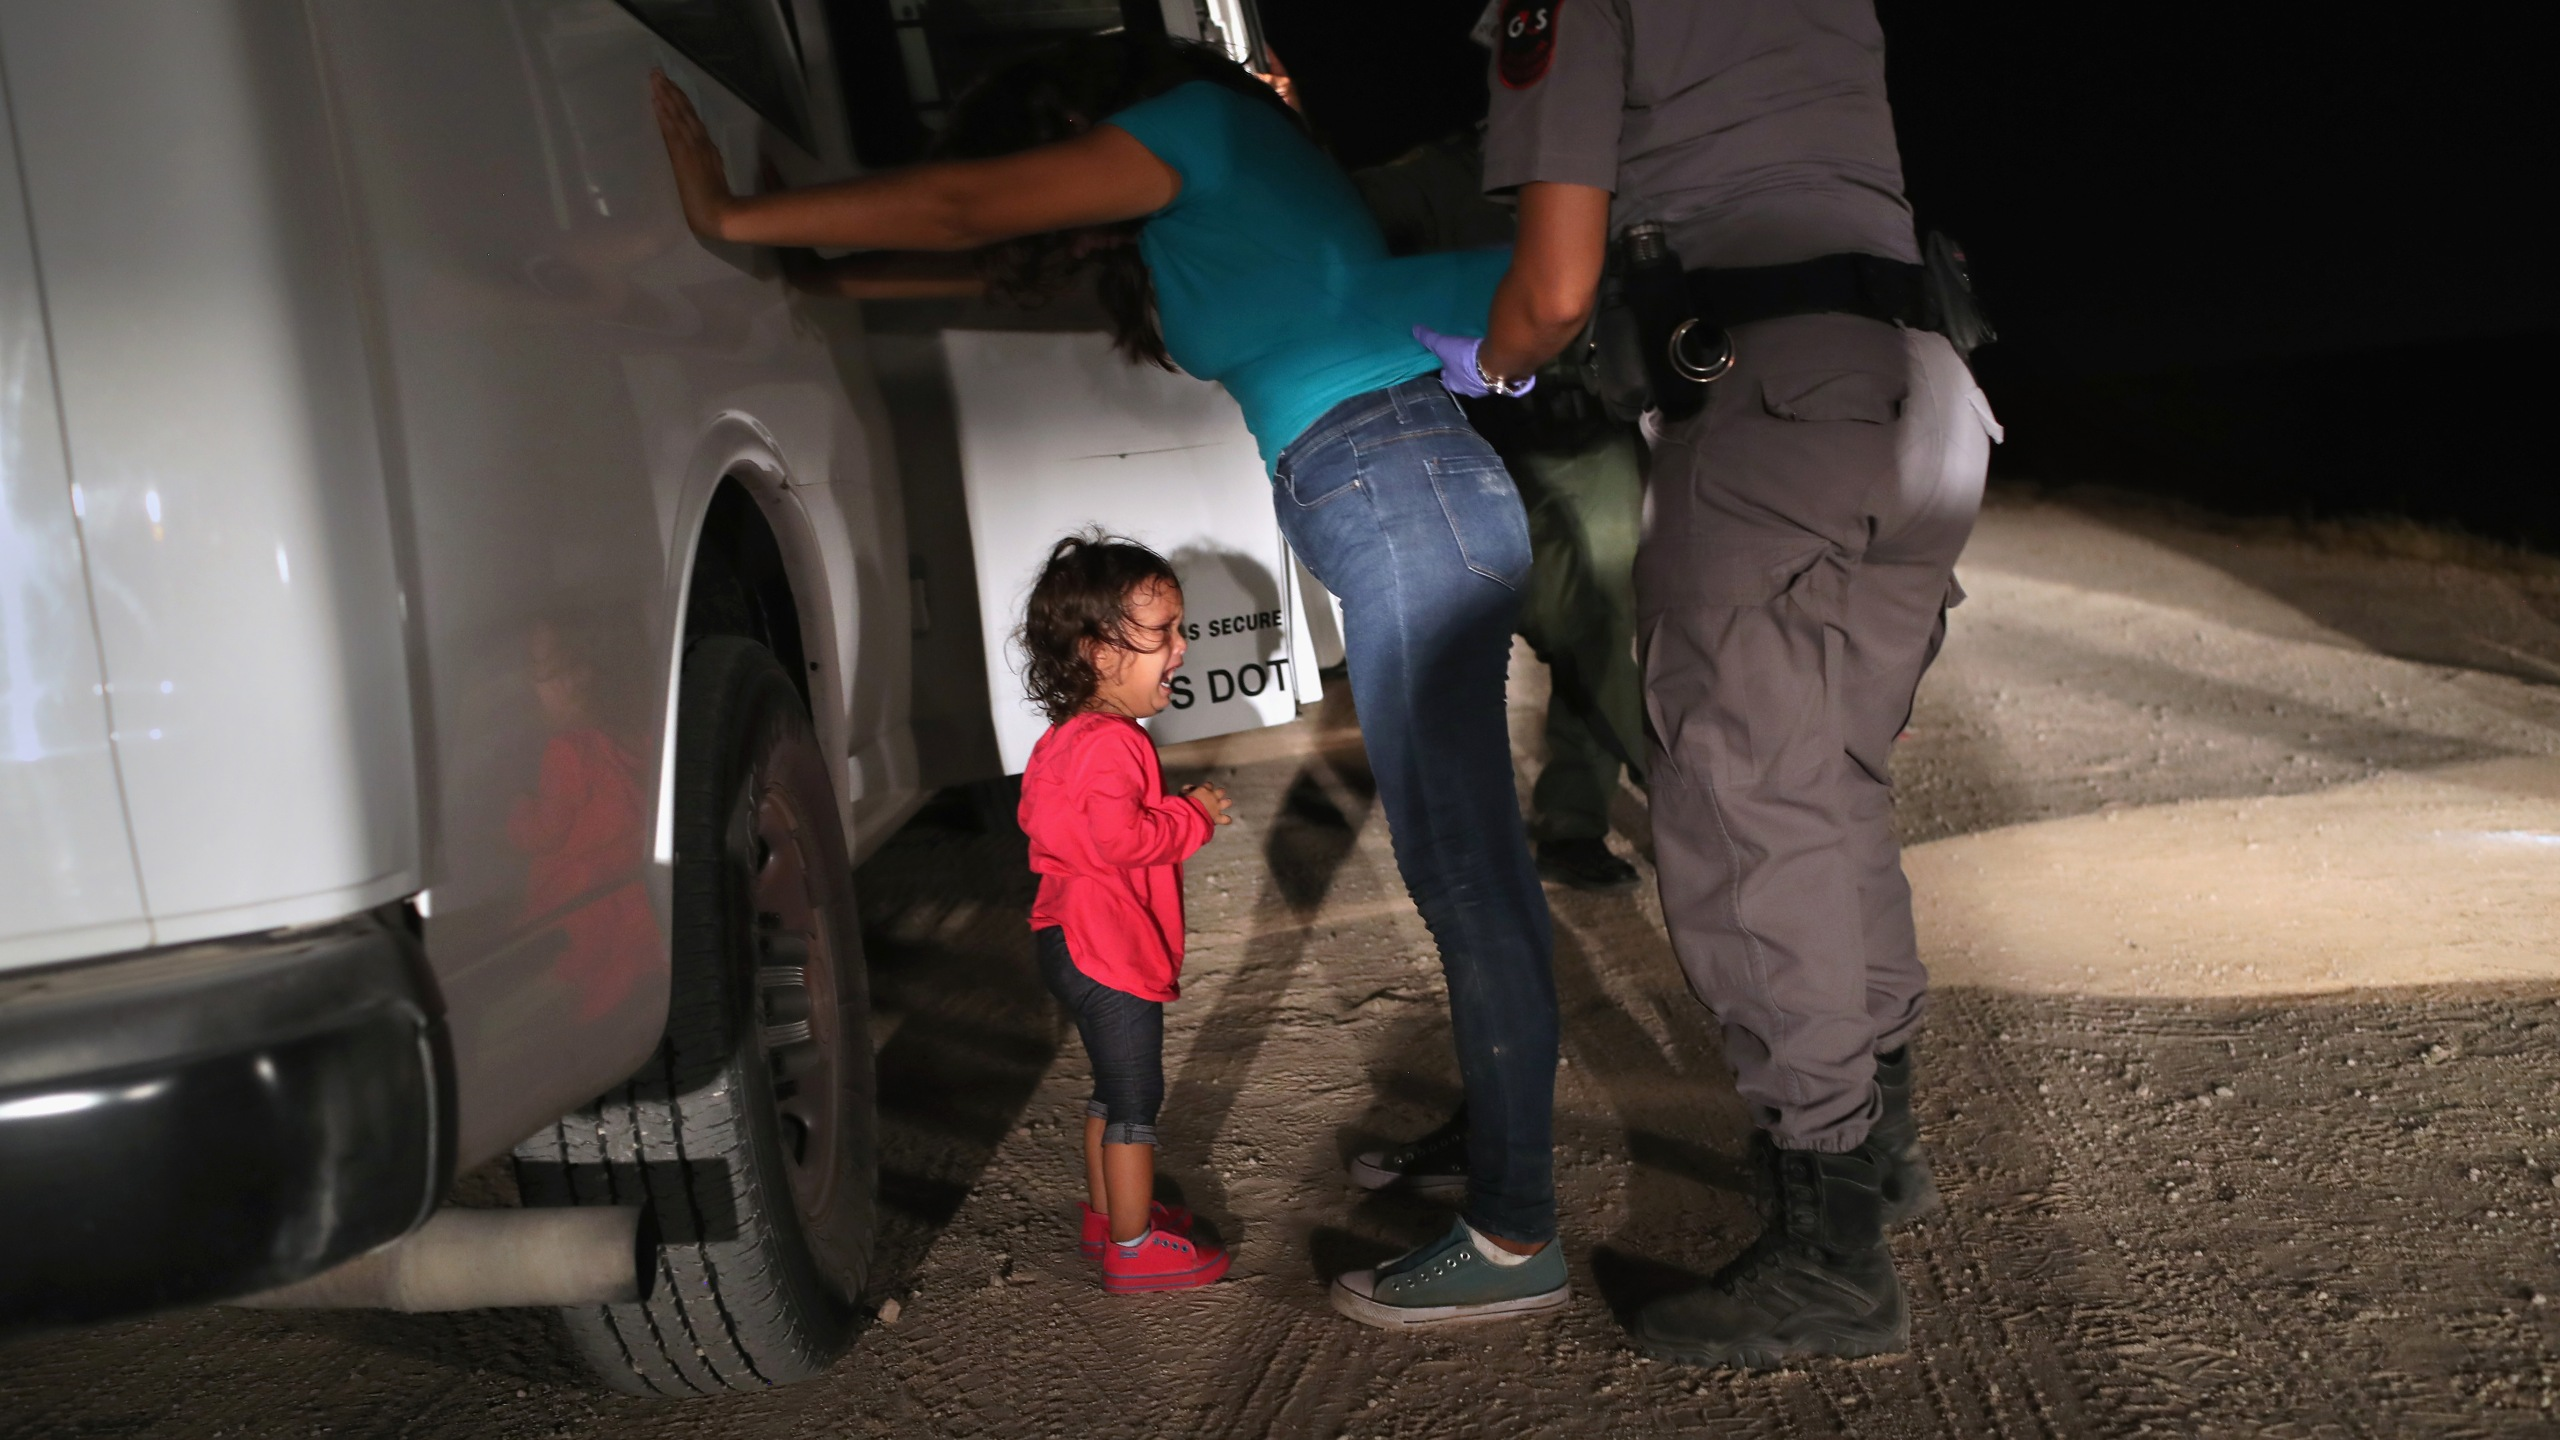 A two-year-old Honduran asylum seeker cries as her mother is searched and detained near the U.S.-Mexico border on June 12, 2018, in McAllen, Texas. (Credit: John Moore/Getty Images)